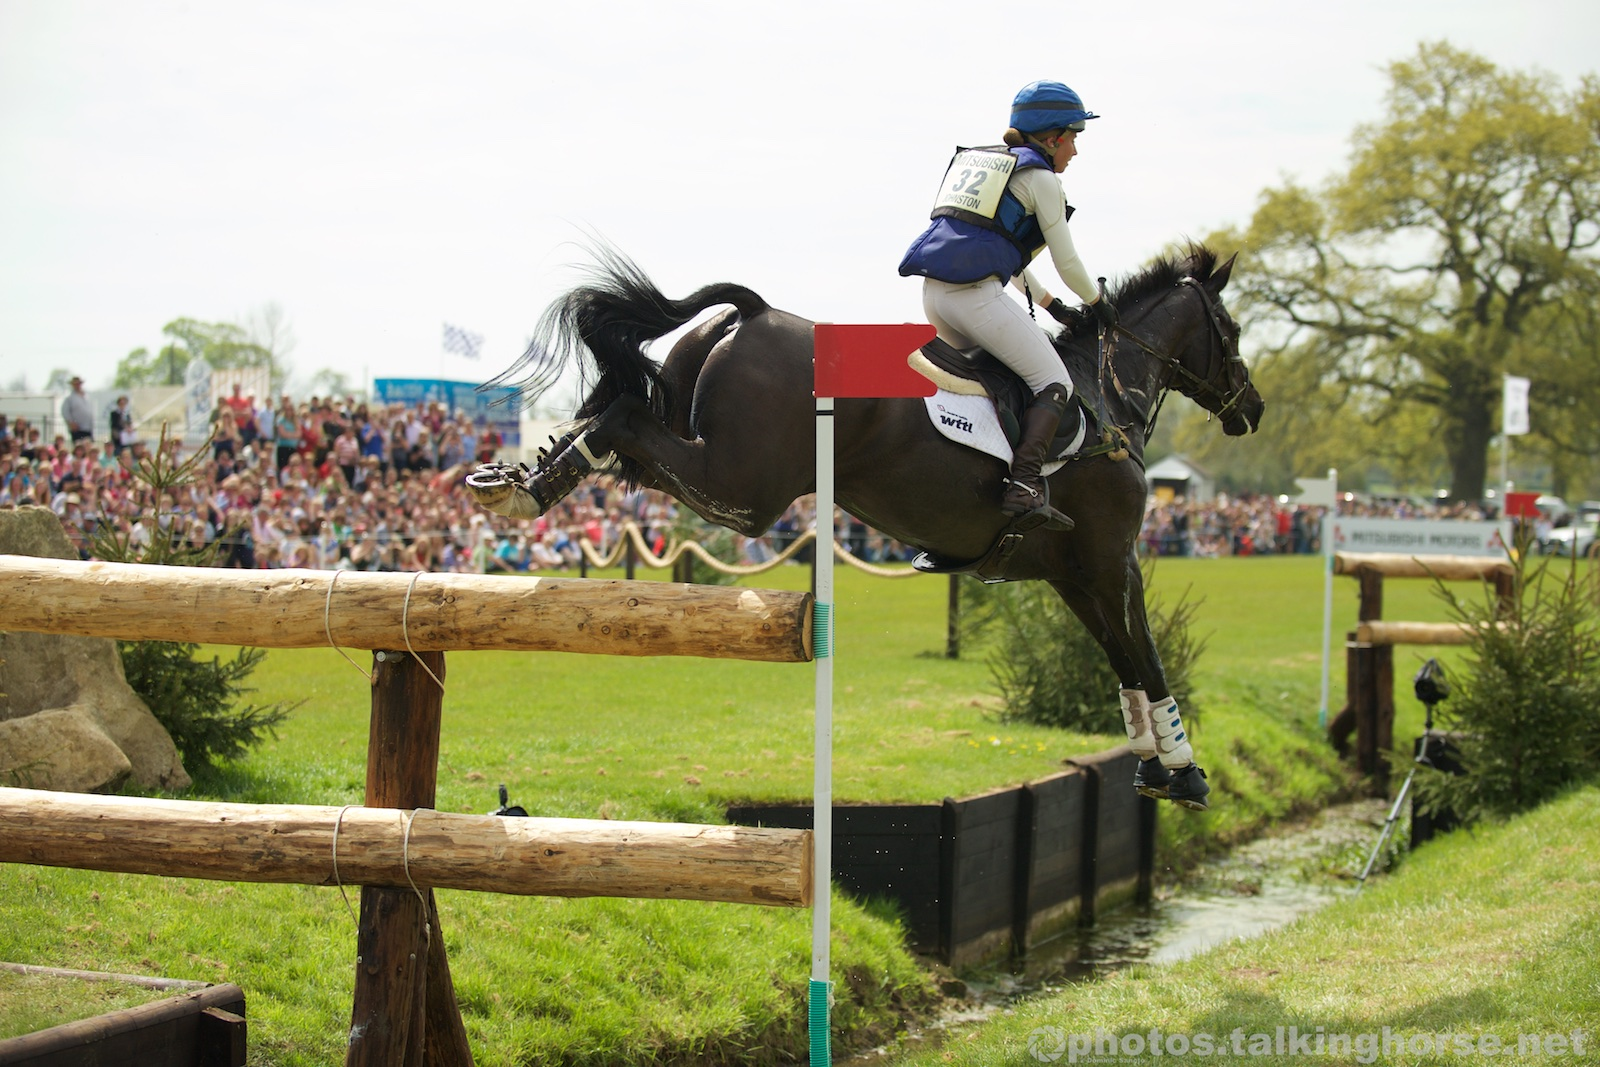 Kirsty Johnston & Opposition Detective Jump The Notorious Vicarage Vee At Badminton Horse Trials 2016